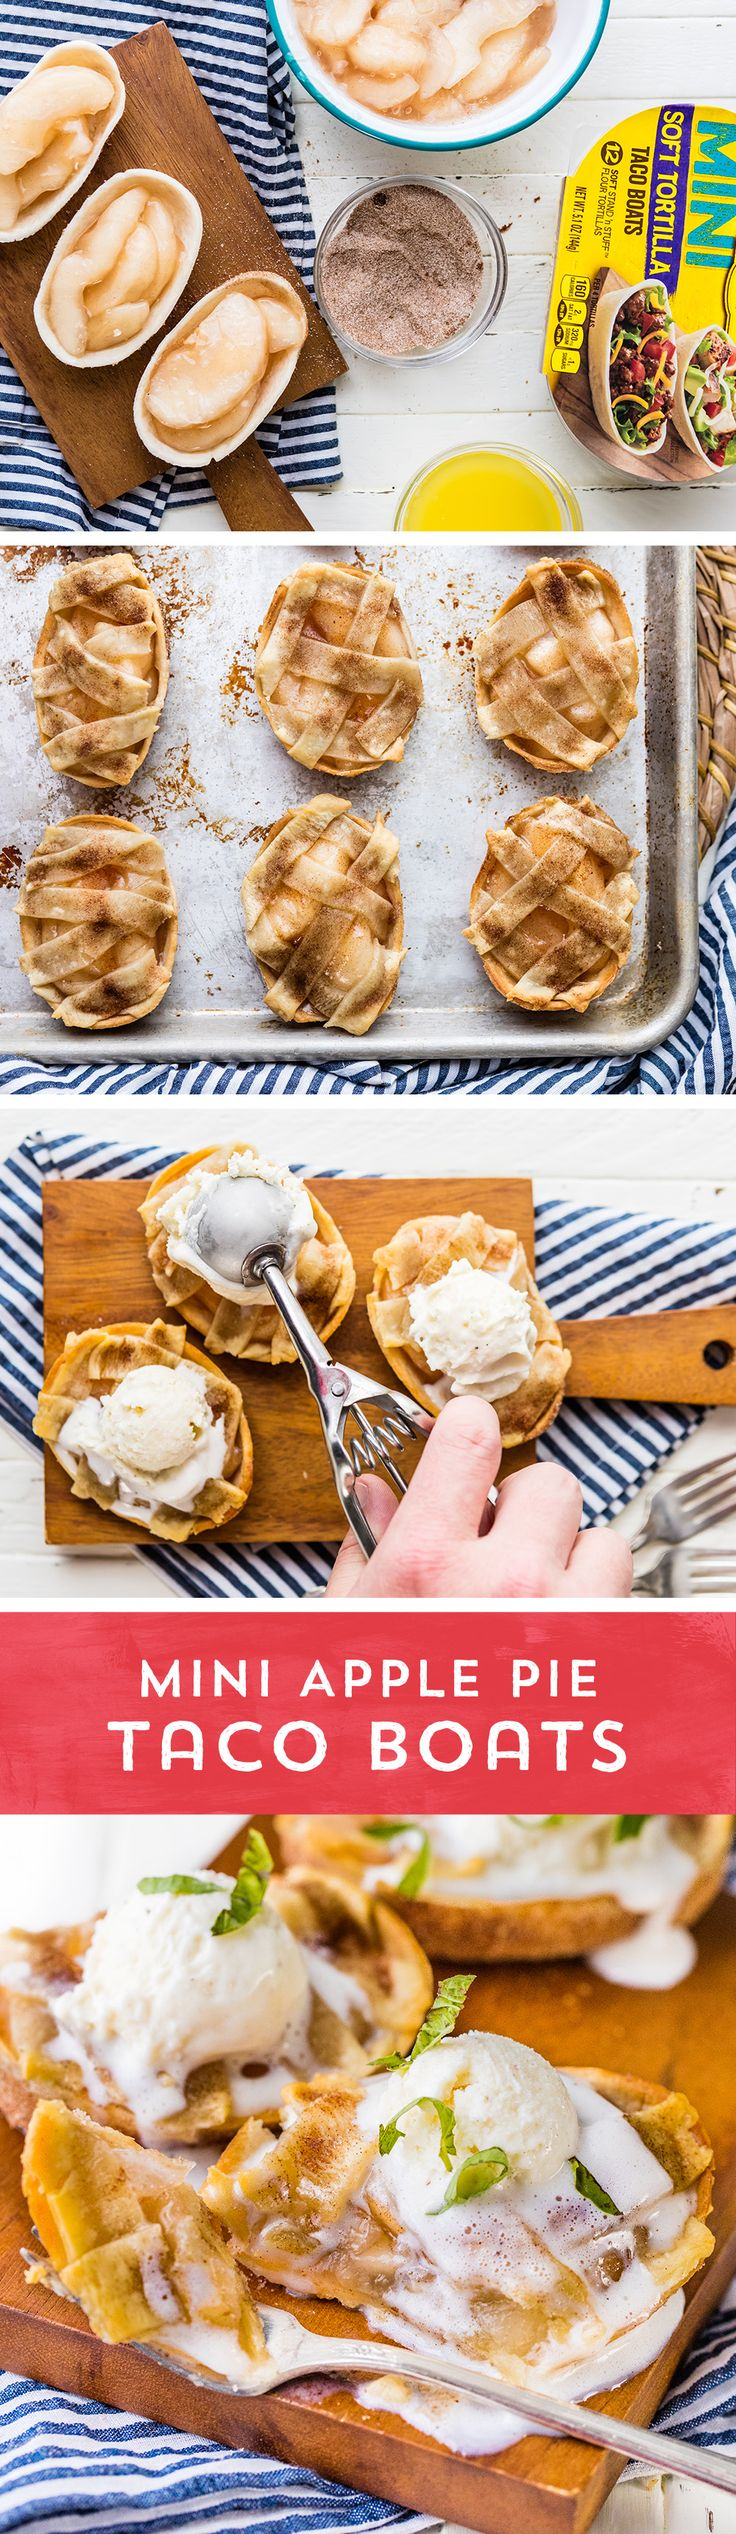 Need an impressive dessert in a hurry? Try these quick and easy Mini Apple Pie Taco Boats from @beckygallhardin! They're all the comfort you crave, in an easy to eat Old El Paso Mini Taco Boat™! Plus, they're ready to eat in just 30 minutes!